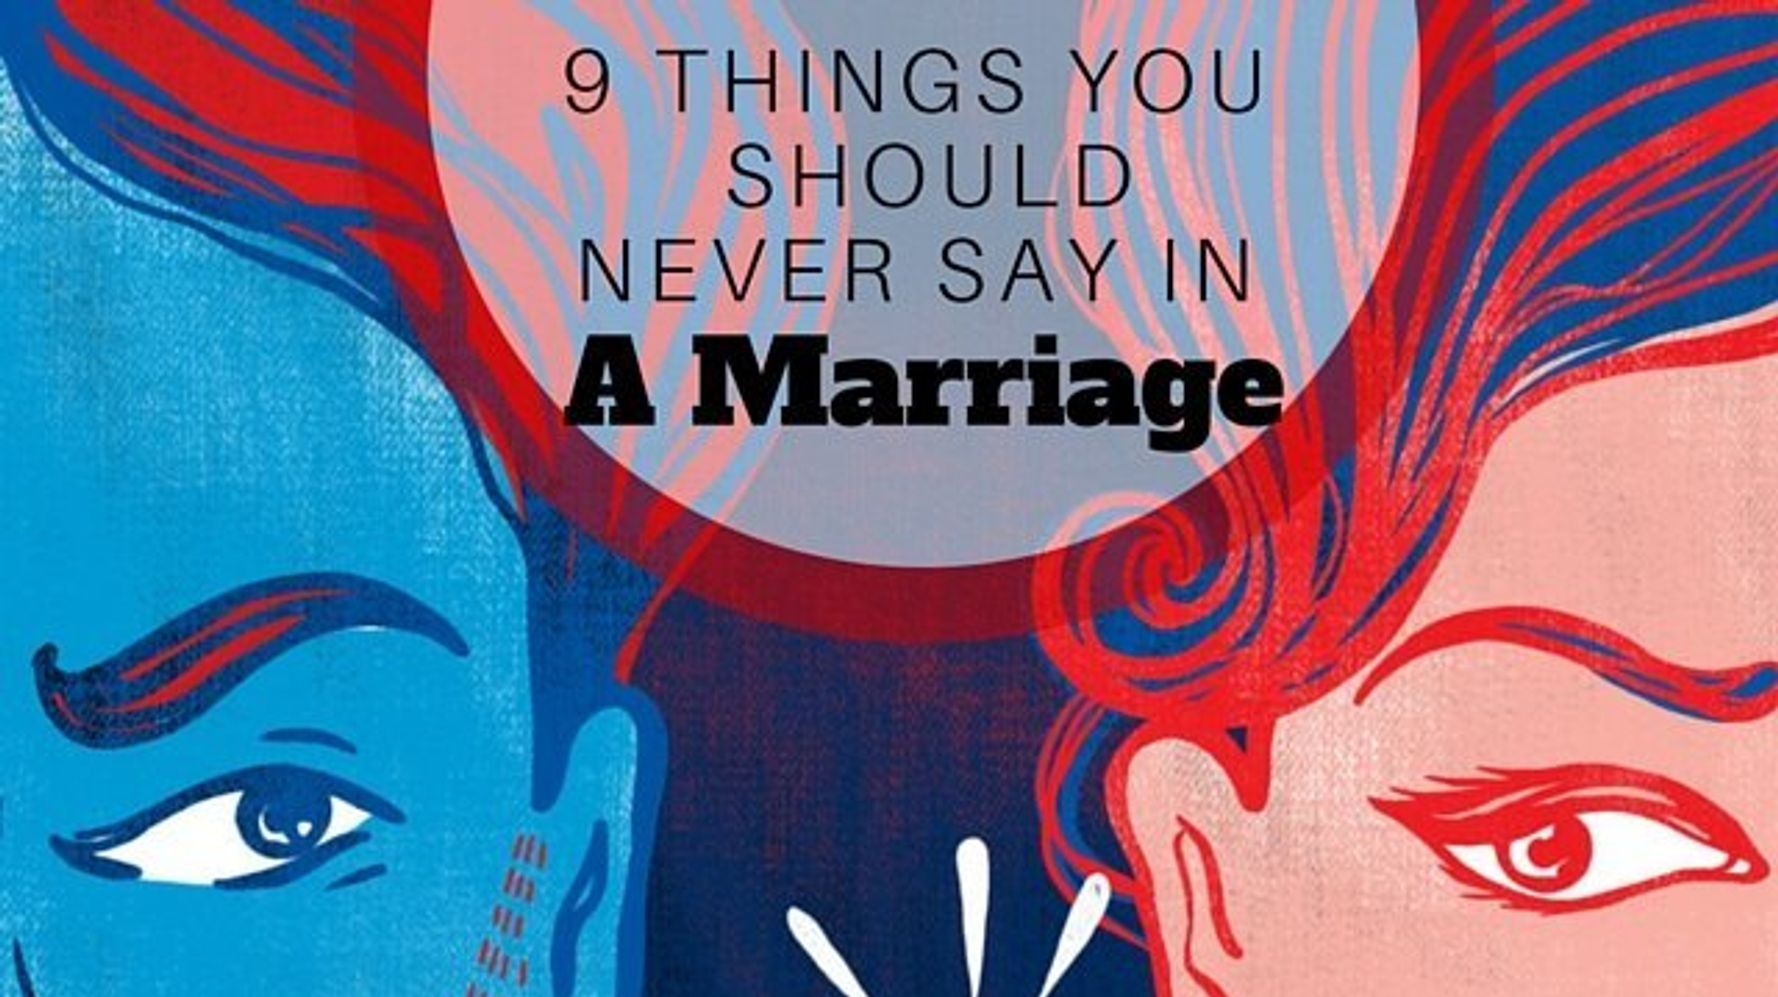 If Your Spouse Says These 9 Things, Your Marriage May Be In